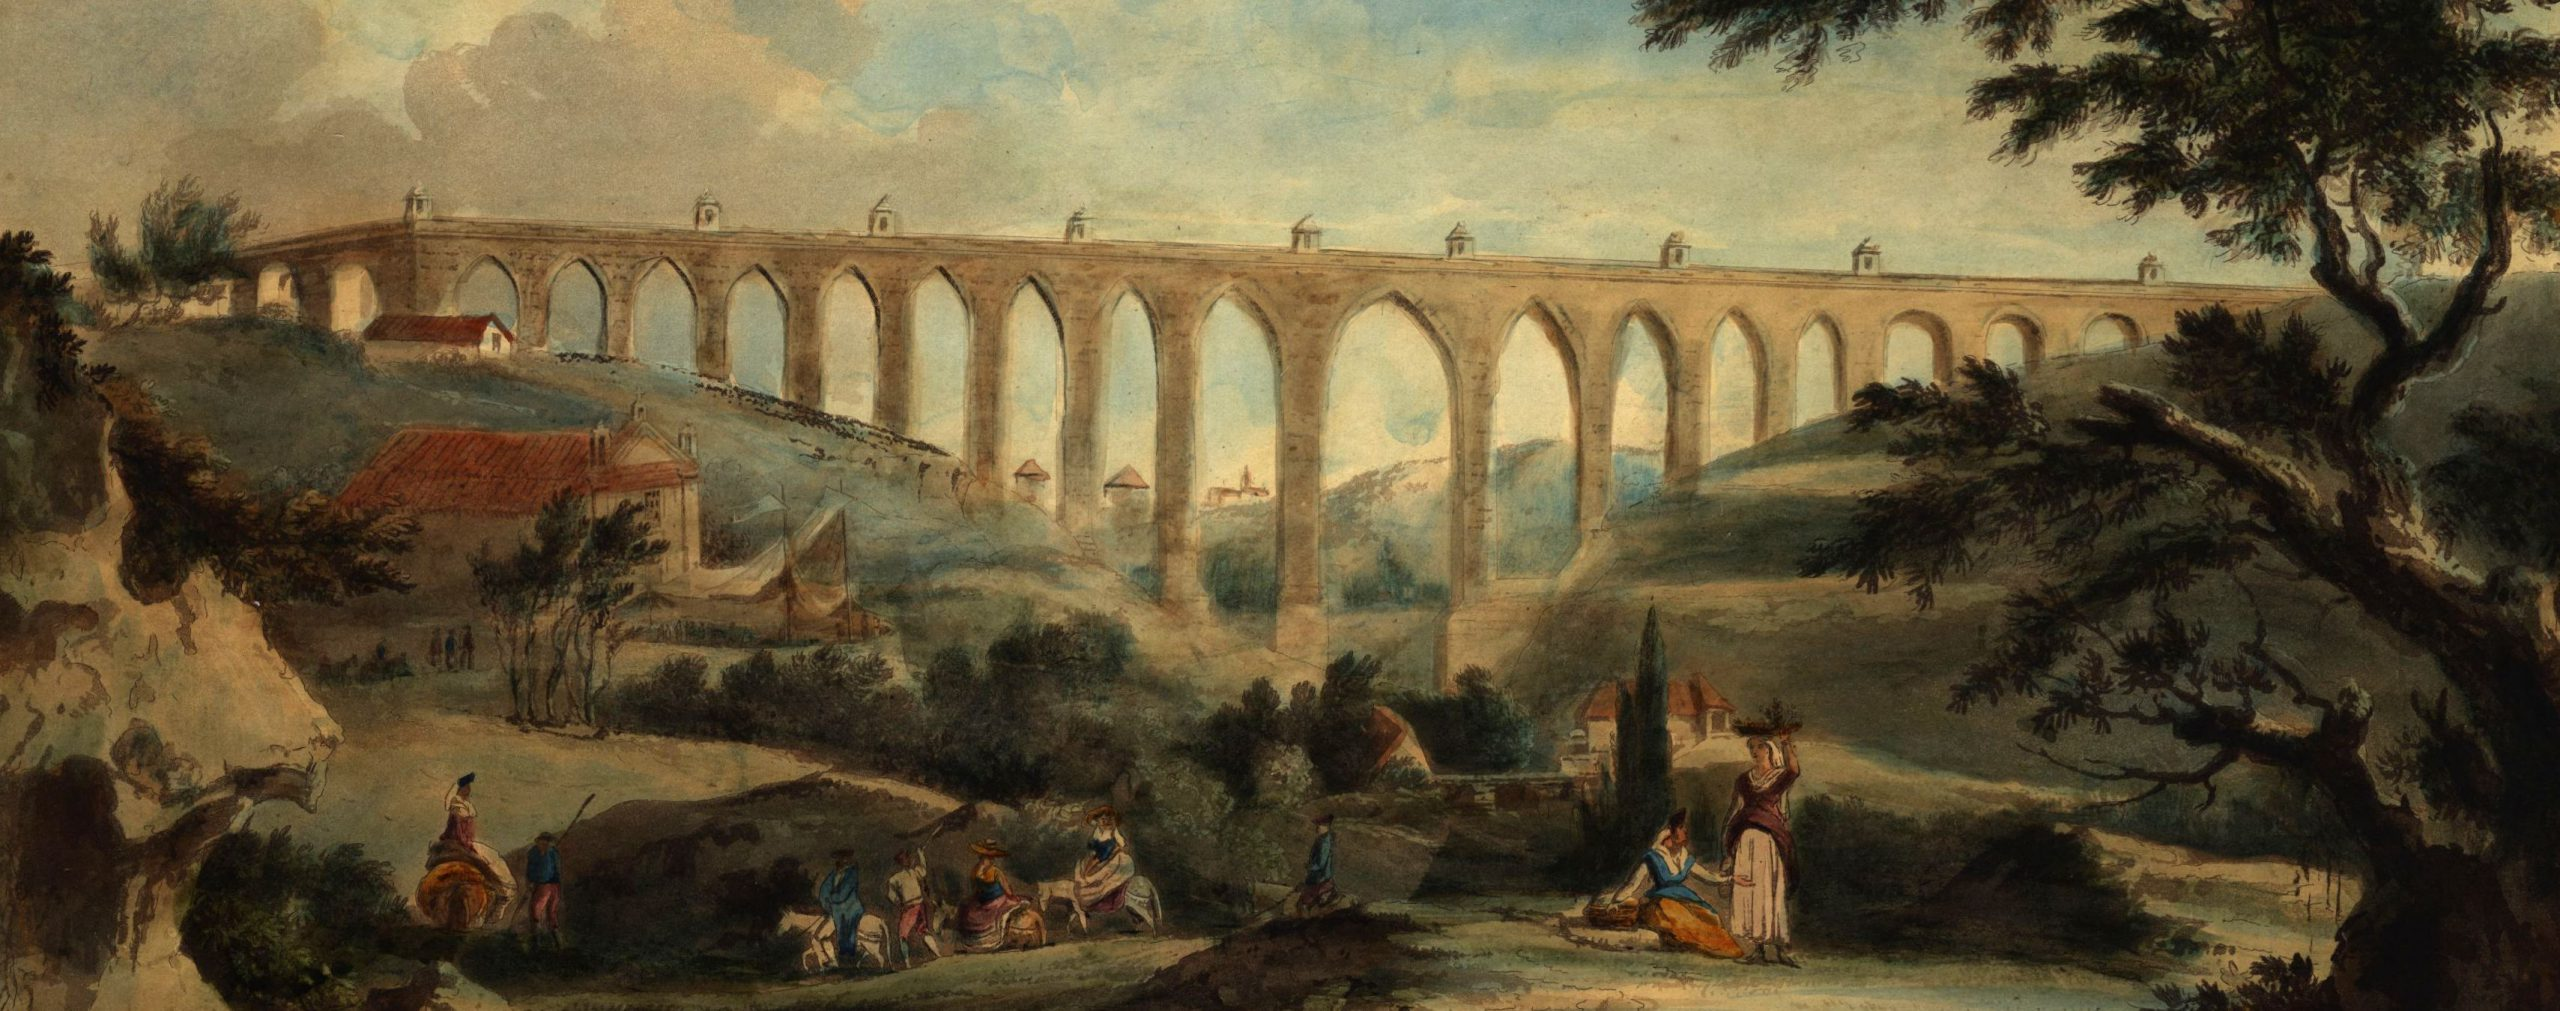 A S. W. view of the grand Aqueduct over the Valley of Alcantara near Lisbon